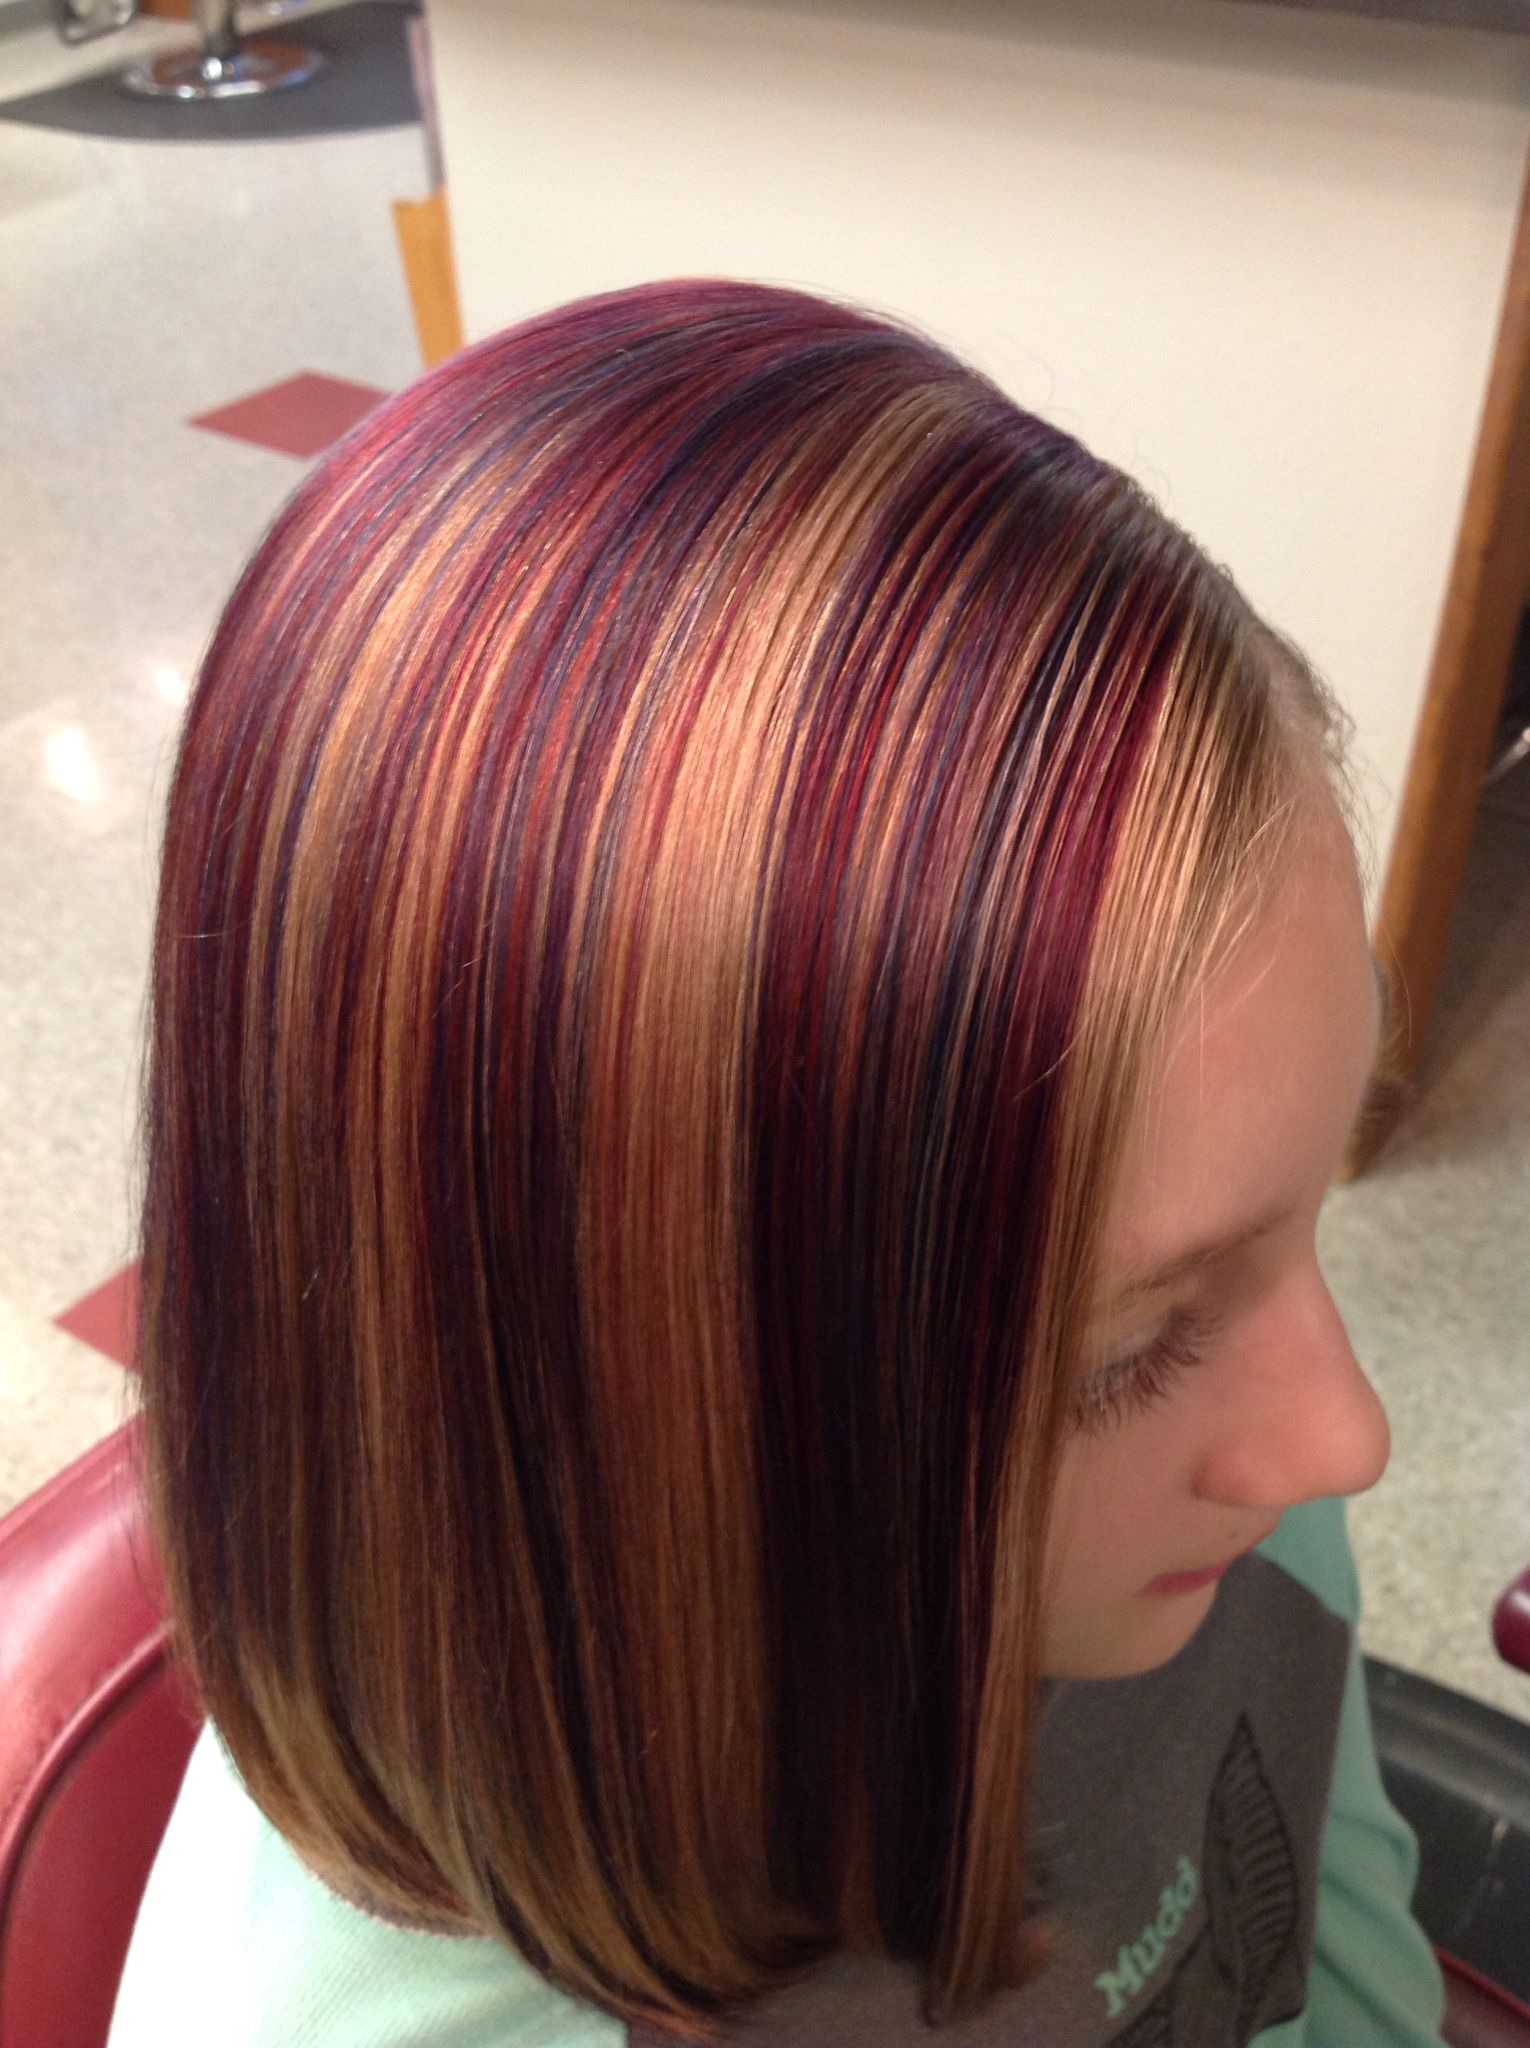 Joico color intensities!